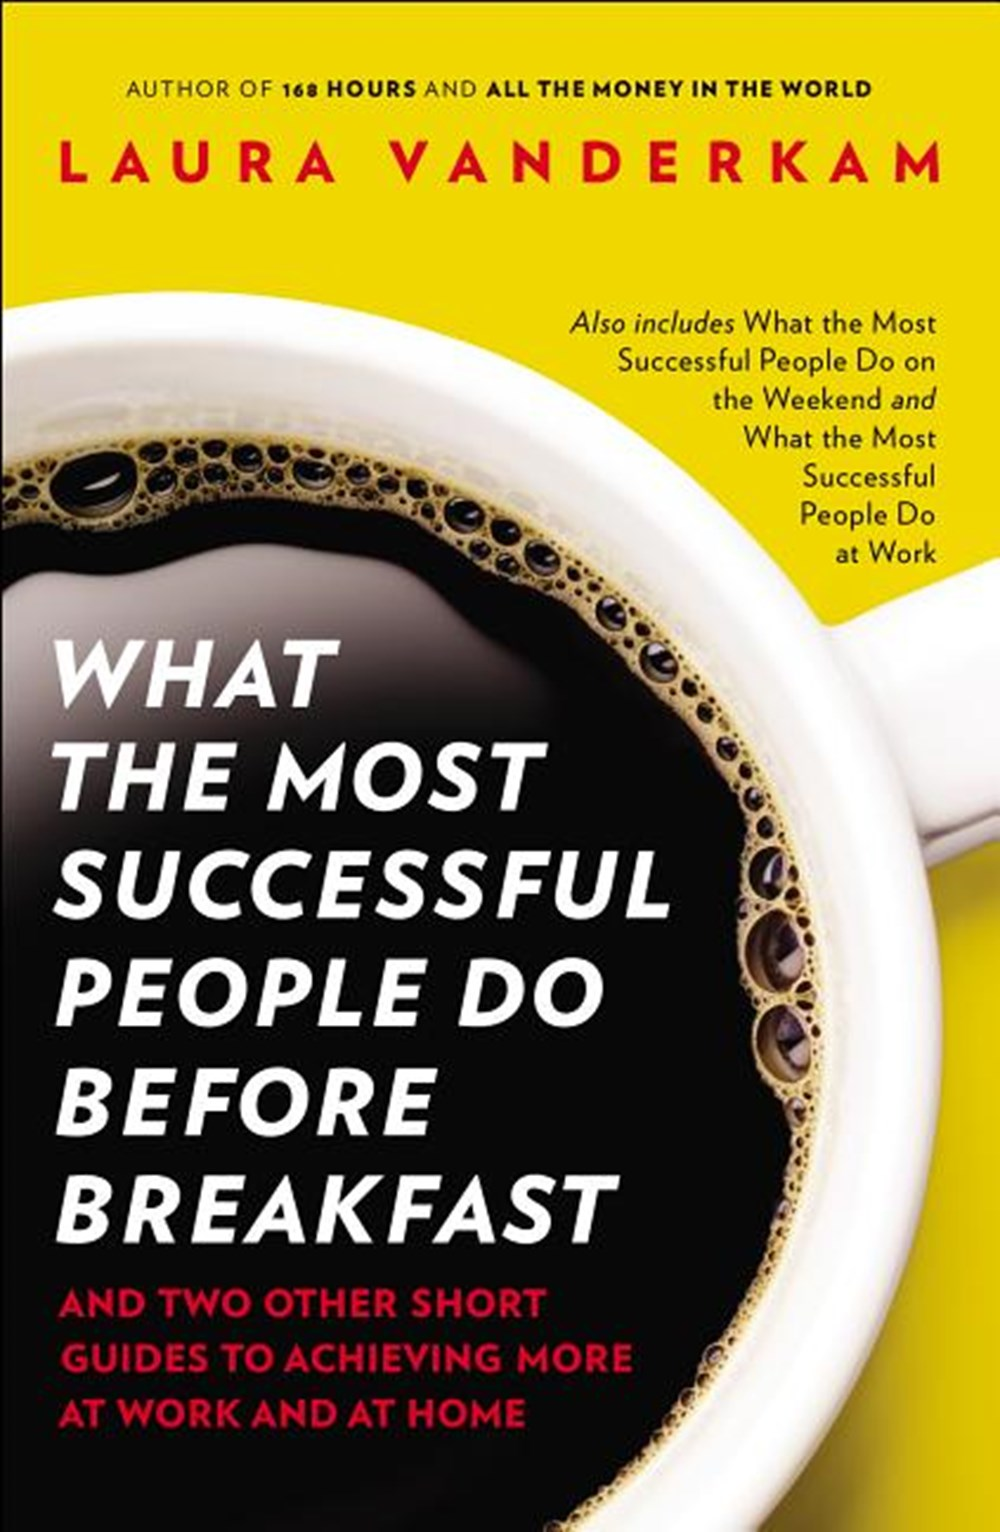 What the Most Successful People Do Before Breakfast And Two Other Short Guides to Achieving More at